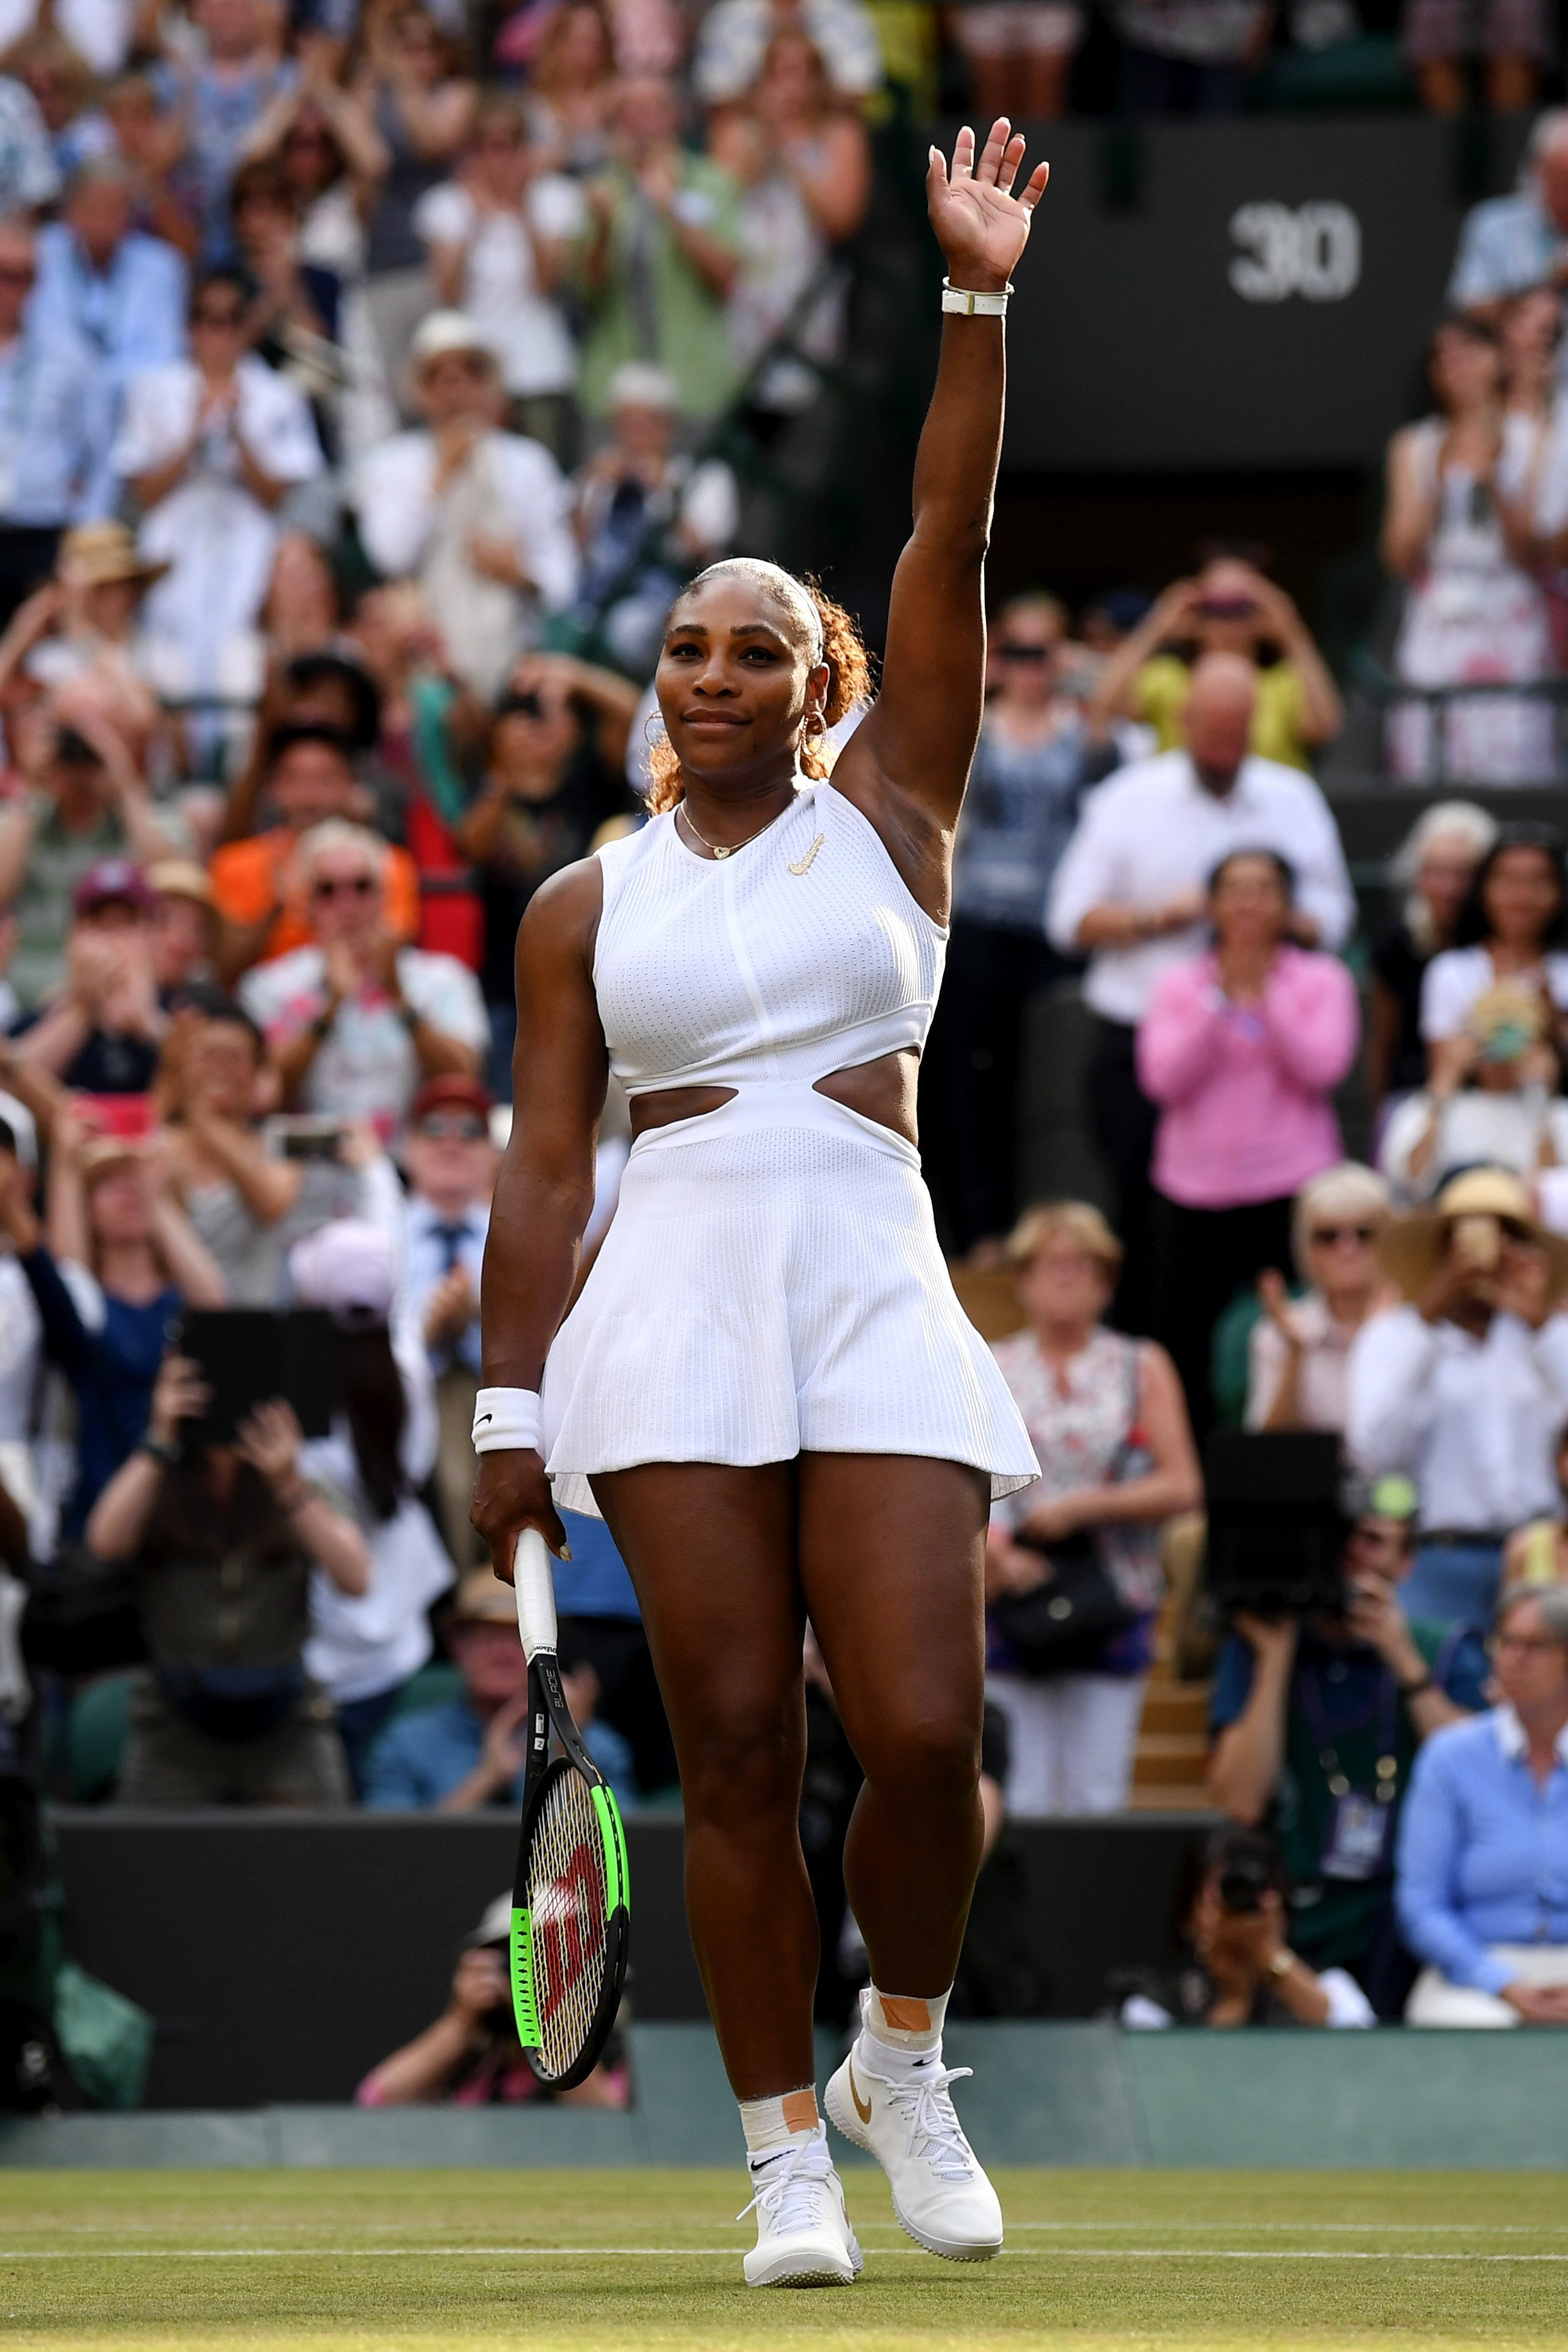 Serena Williams at Wimbledon 2019 on July 11, 2019 in London, England. |Photo: Getty Images